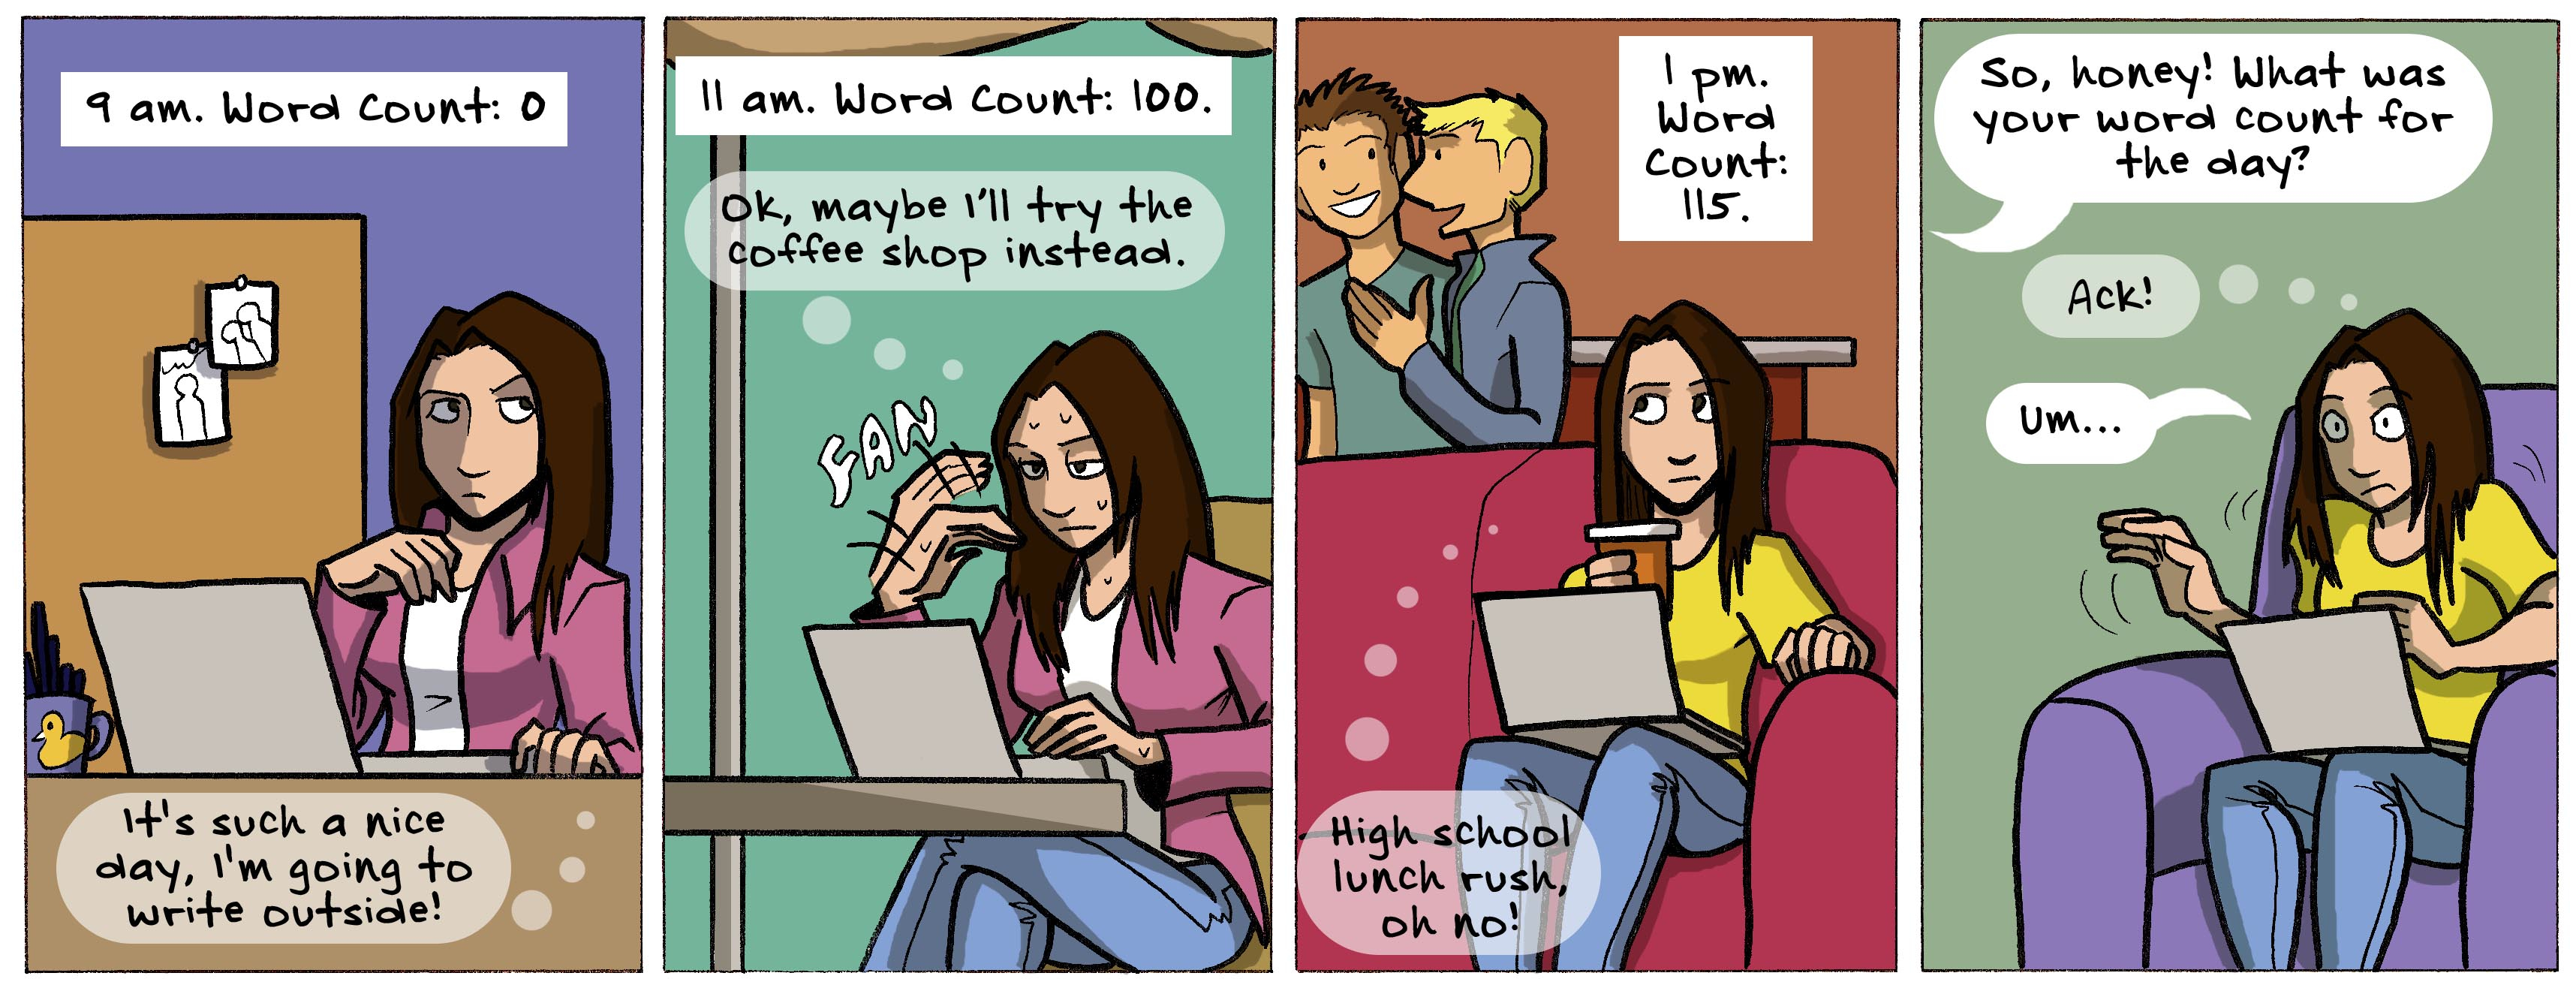 Getting your word count done comic